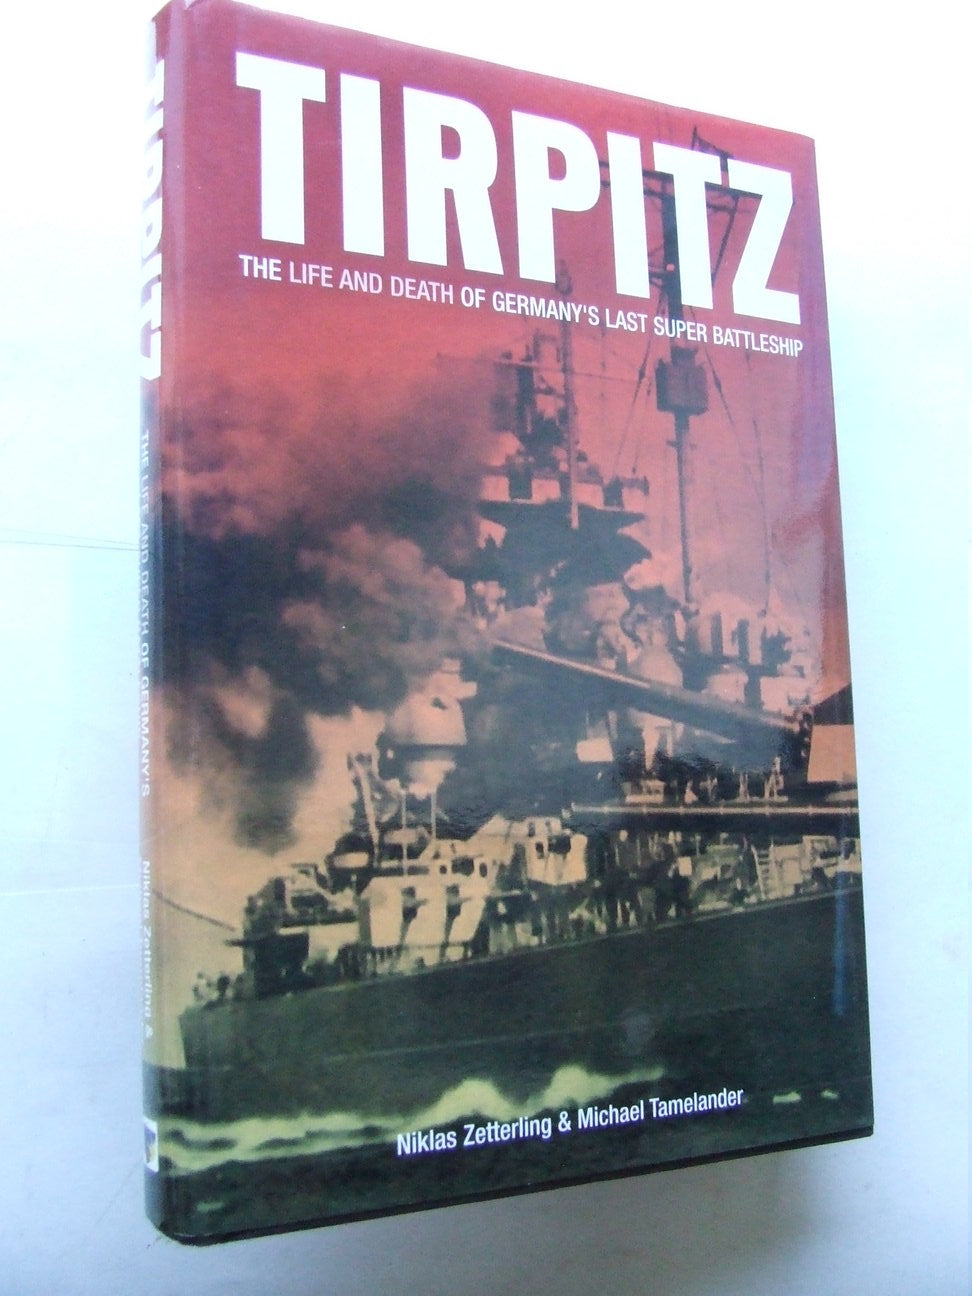 Tirpitz, the life and death of Germany's last super battleship